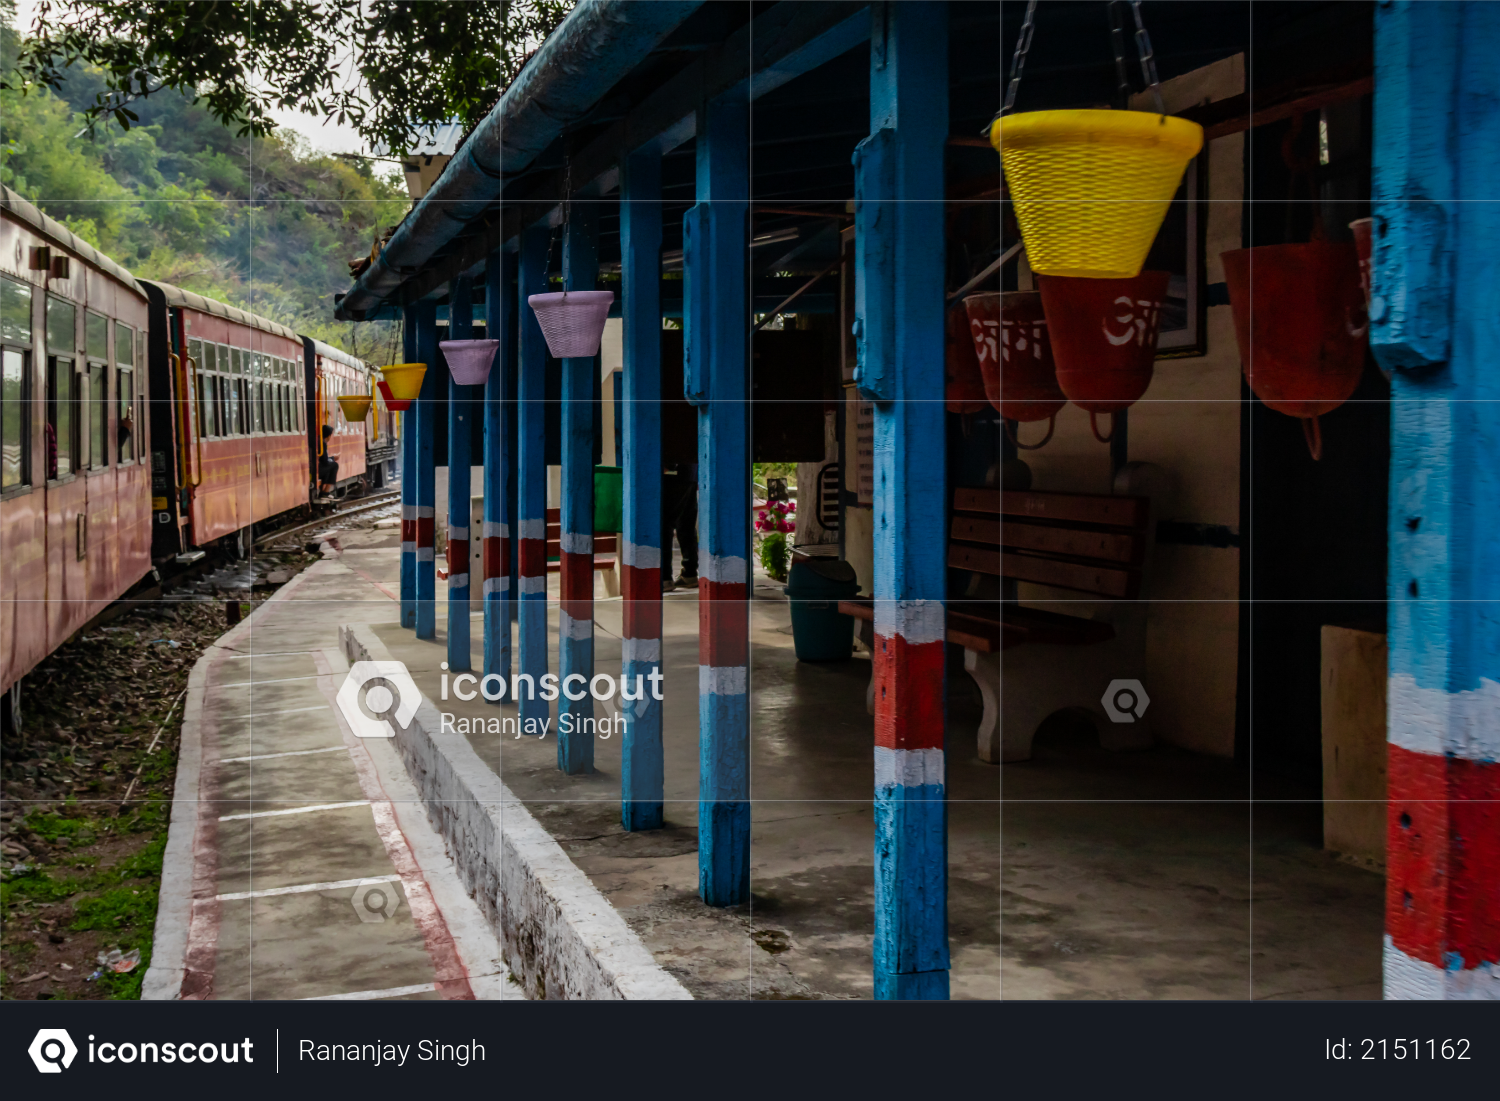 Photography of railway station with a train passing by, travel concept Photo